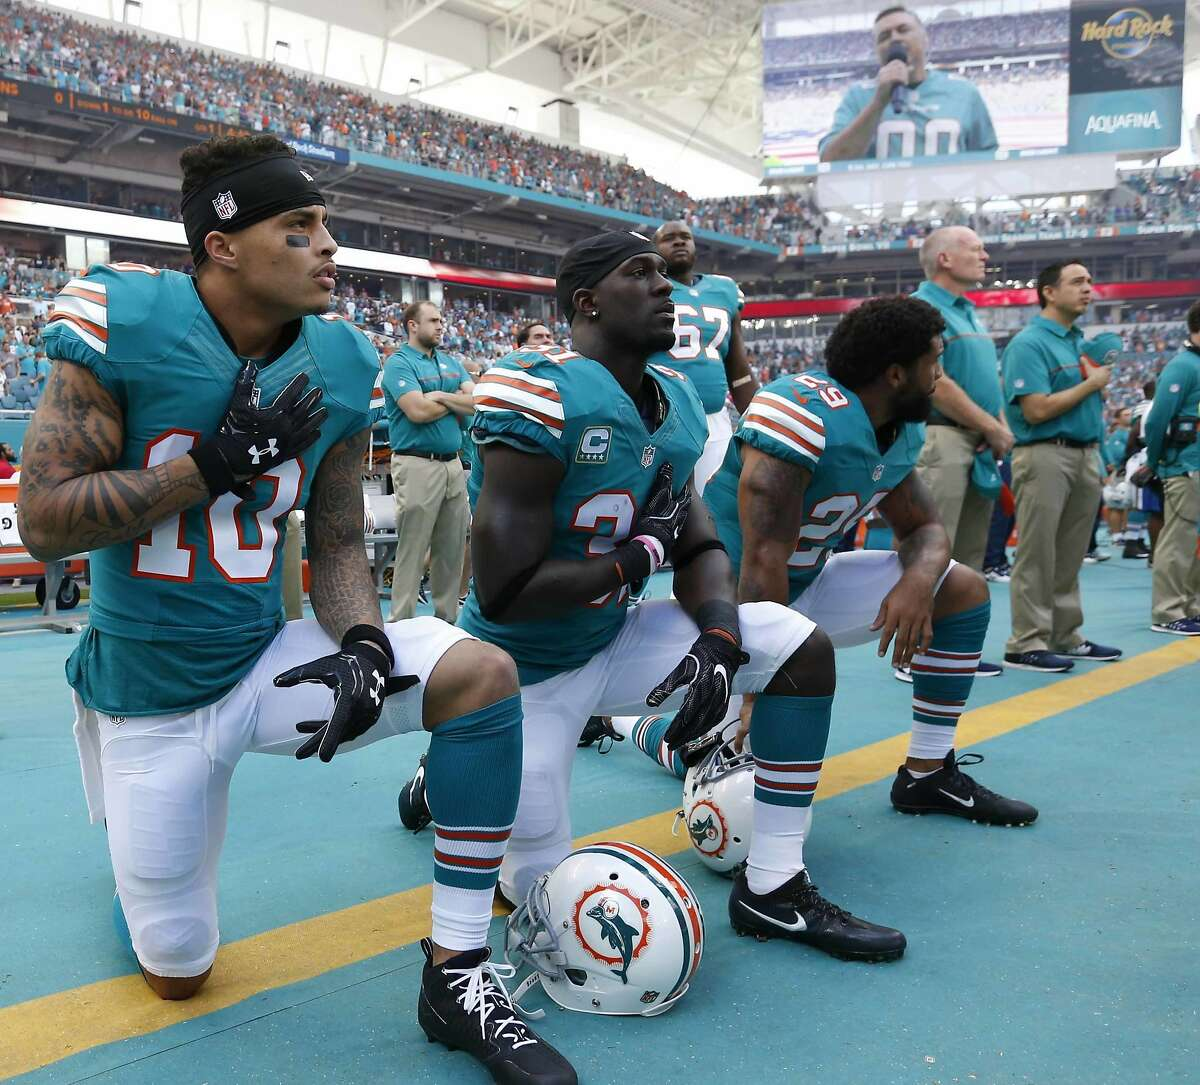 In the last week, the Texans have traded for wide receiver Kenny Stills (pictured far-left) and left tackle Laremy Tunsil of the Miami Dolphins, as well as Carlos Hyde of the Kansas City Chiefs. >>>Here's what you need to know about the team's new acquisitions. (AP Photo/Wilfredo Lee, File)